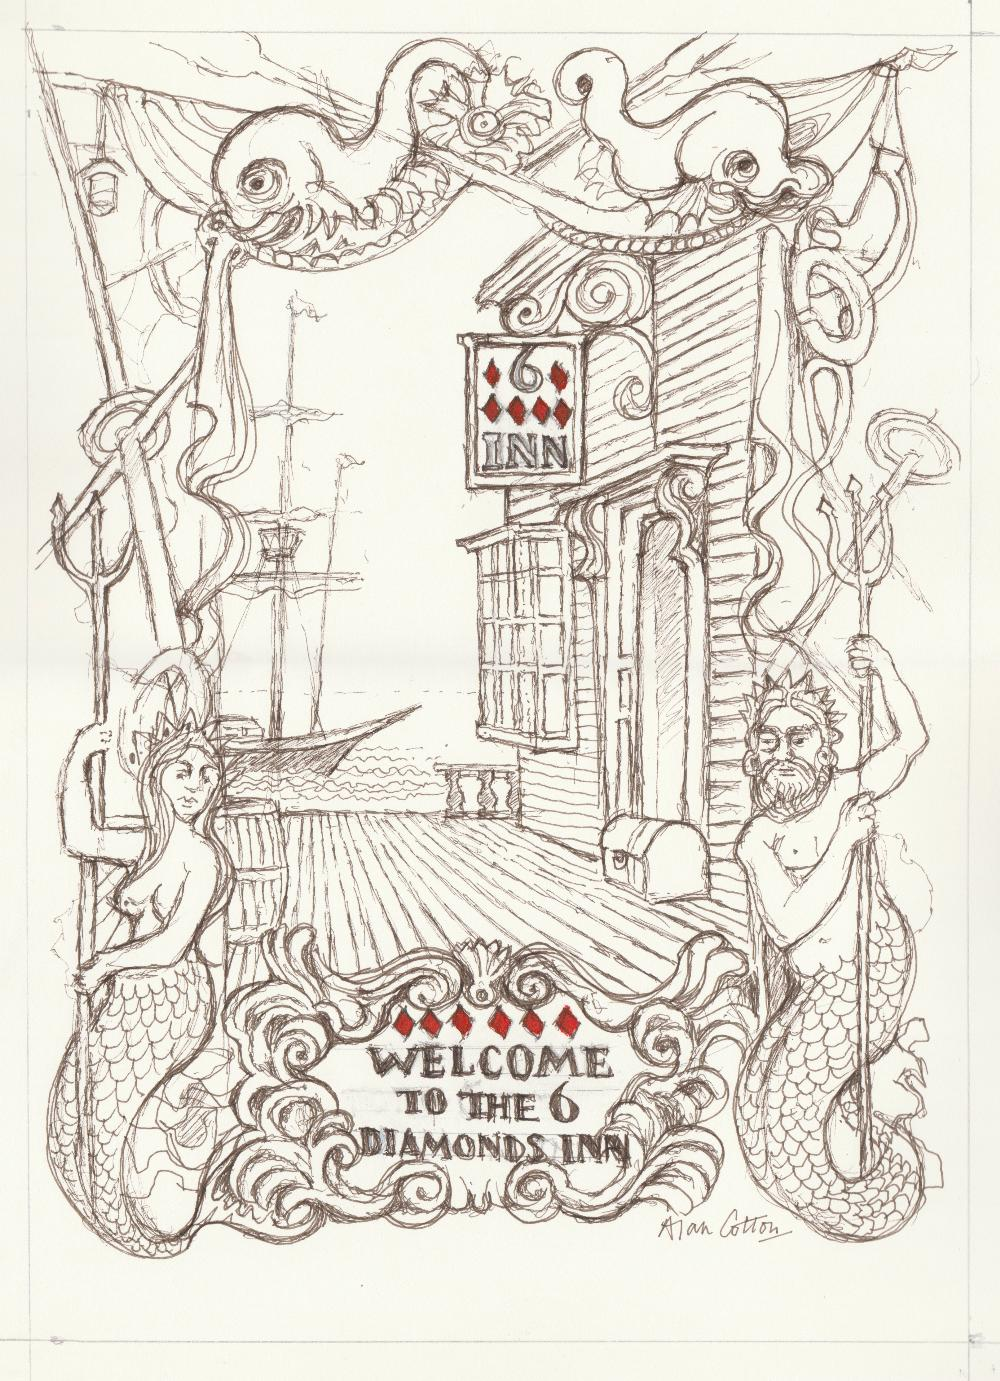 Alan Cotton (British). '6 of Diamonds / Welcome to the 6 Diamonds Inn'. Ink drawing on paper.